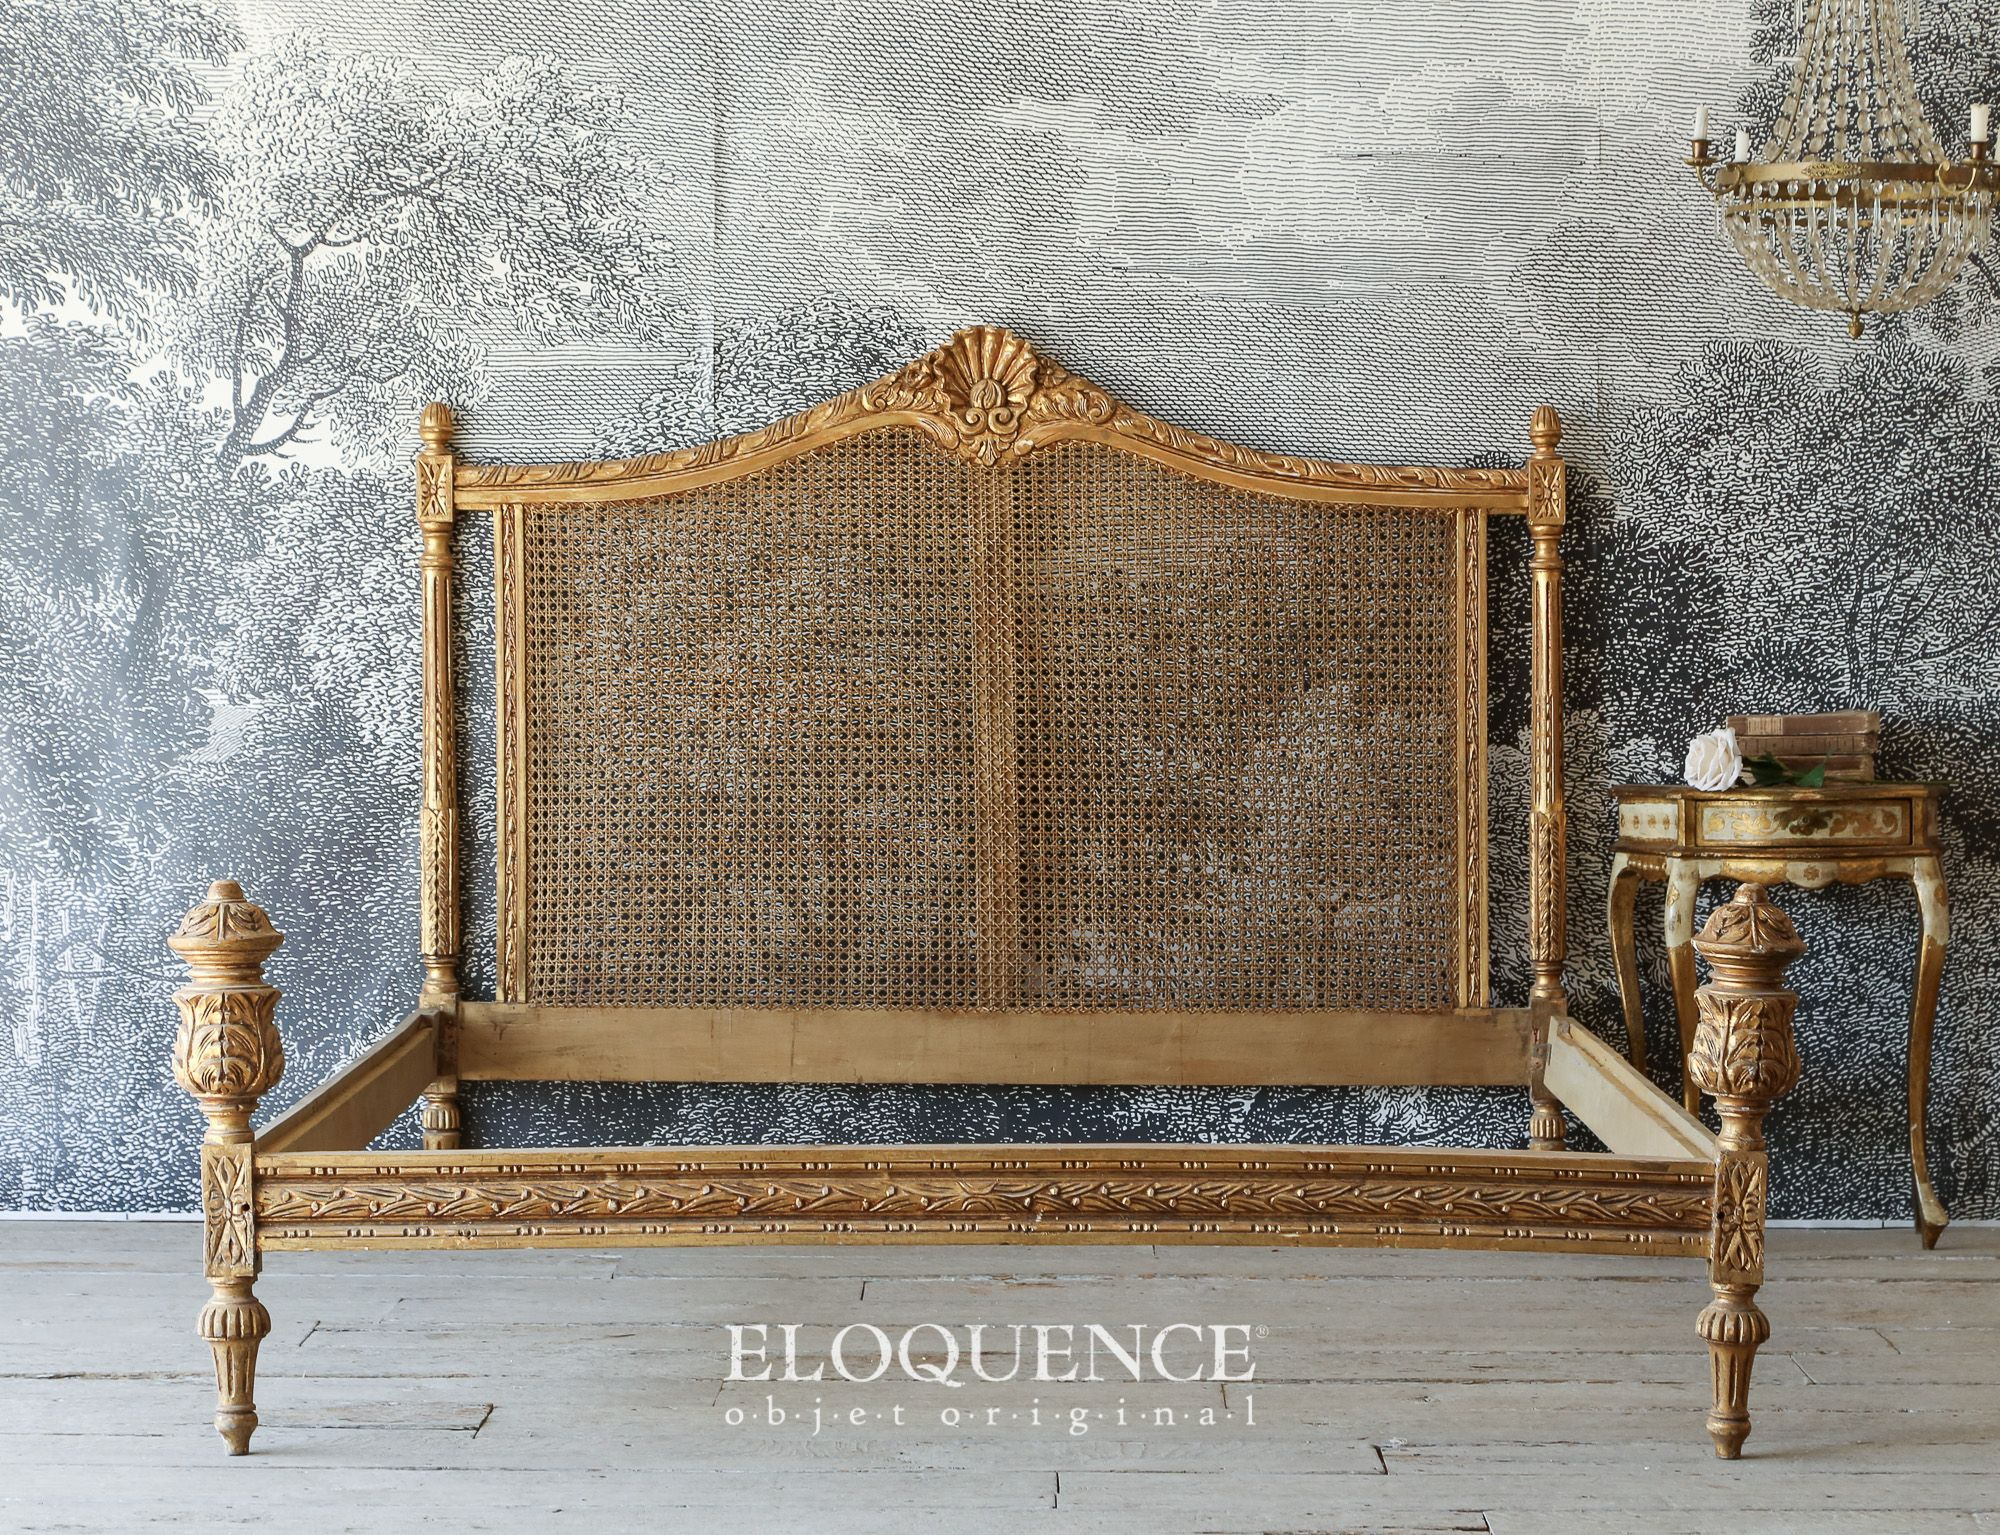 Eloquence Antique Bed Beds